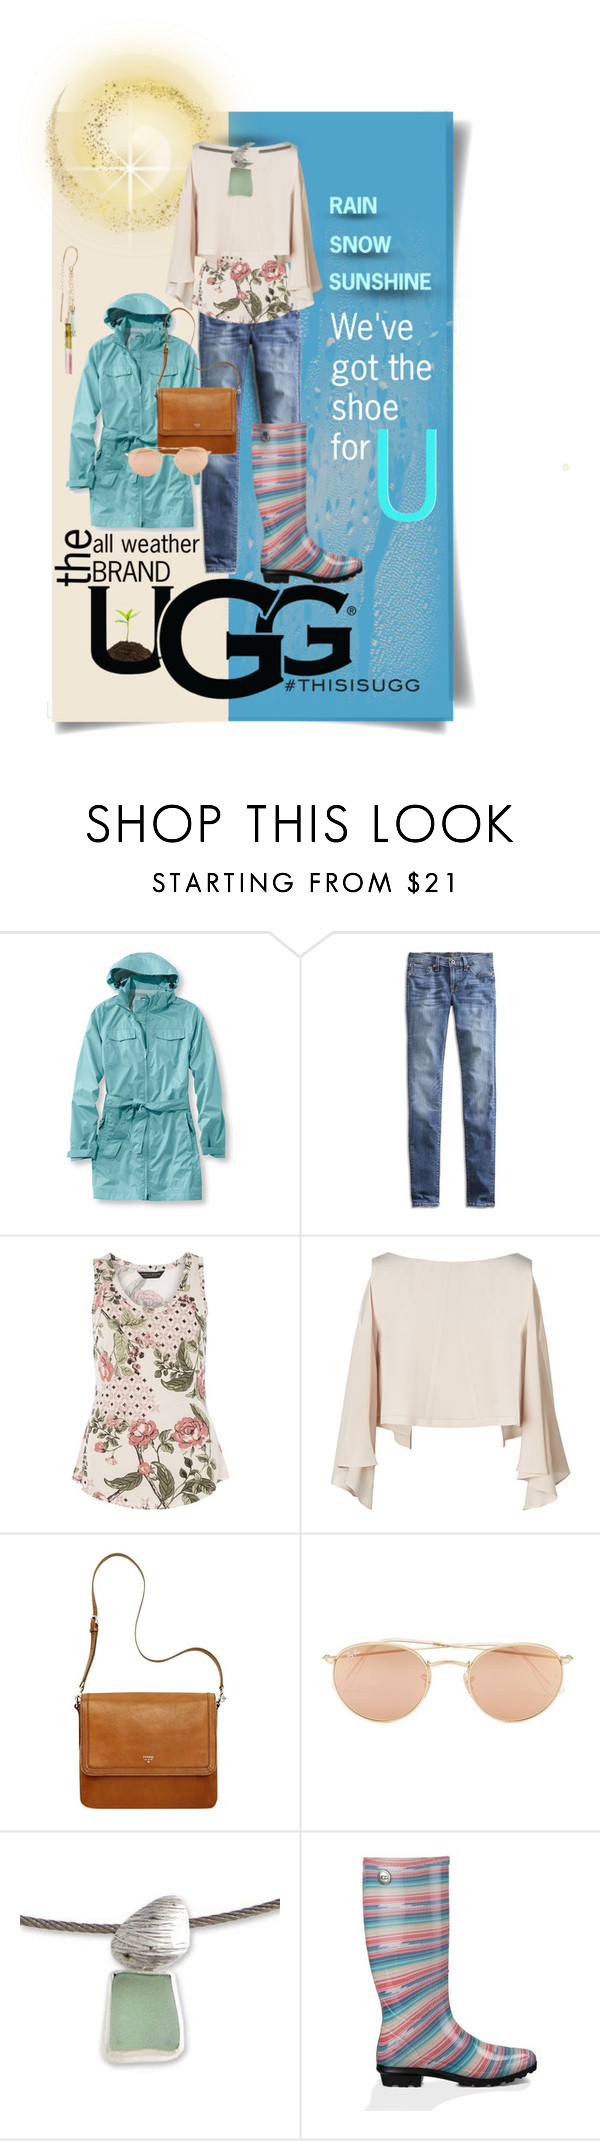 """Play With Prints In UGG: Contest Entry"" by simply-one ❤ liked on Polyvore featuring L.L.Bean, Lucky Brand, UGG Australia, Dorothy Perkins, Ray-Ban, NOVICA, Melissa Joy Manning and thisisugg"